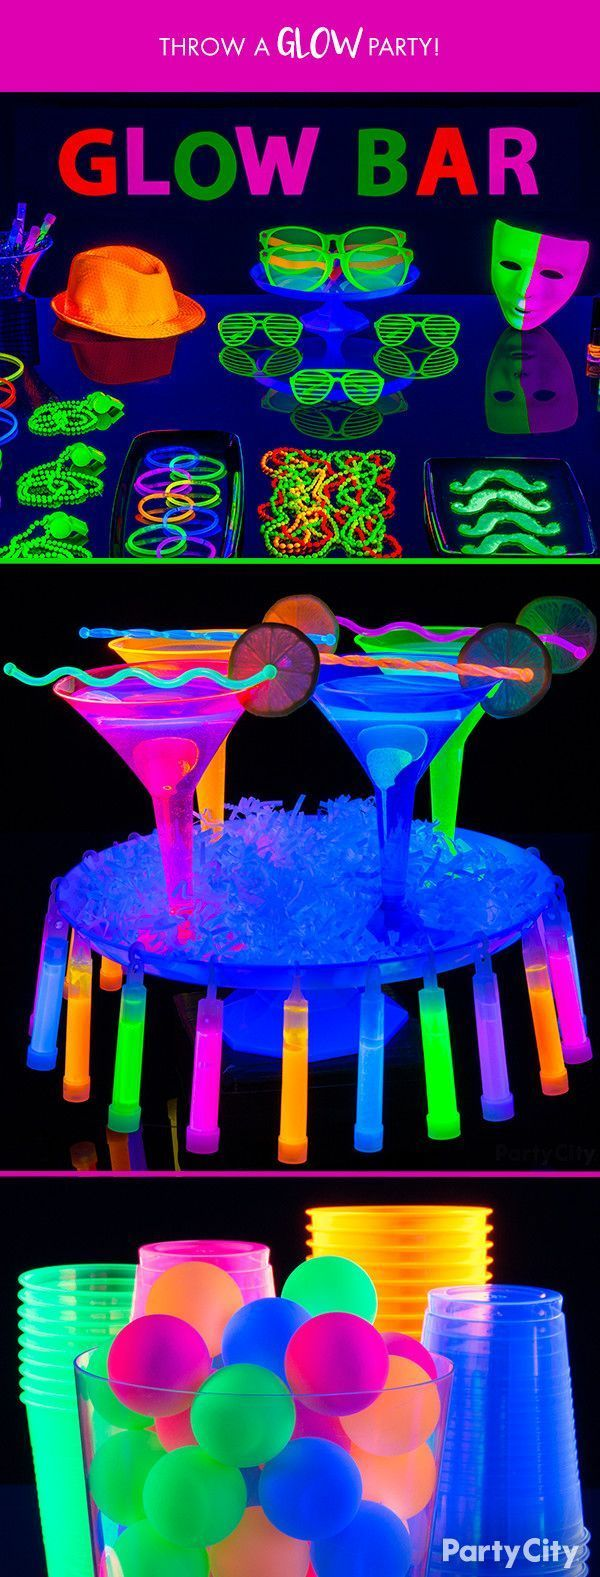 When the lights go out, the party's on. Let it glow all summer with glow sticks and drinkware from Party City! Throw a glow-in-the-dark party that will leave your guests with all the highlights. For added effect, illuminate your glow with fluorescent black lights. #partyideen